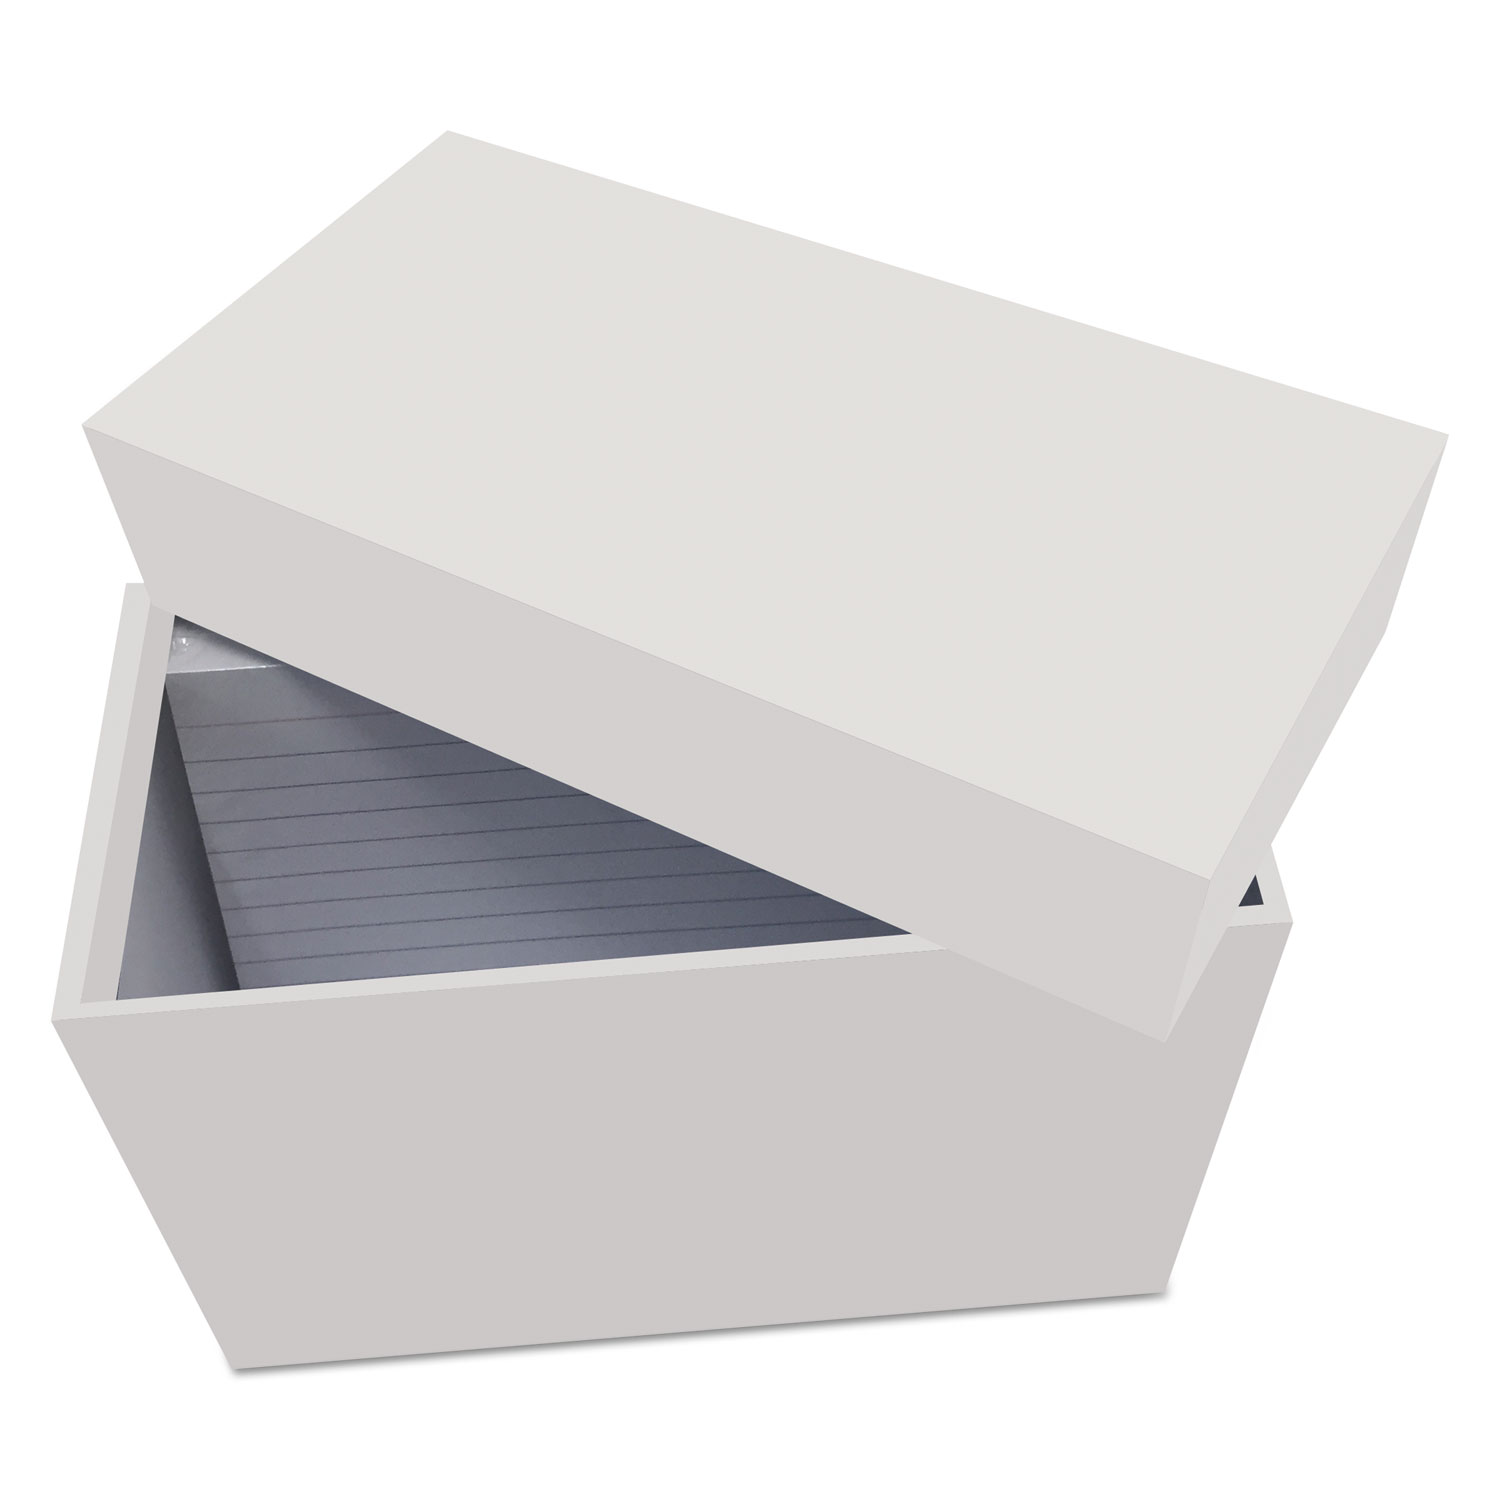 """Index Card Box with 100 Ruled Index Cards, 4"""" x 6"""", Gray"""